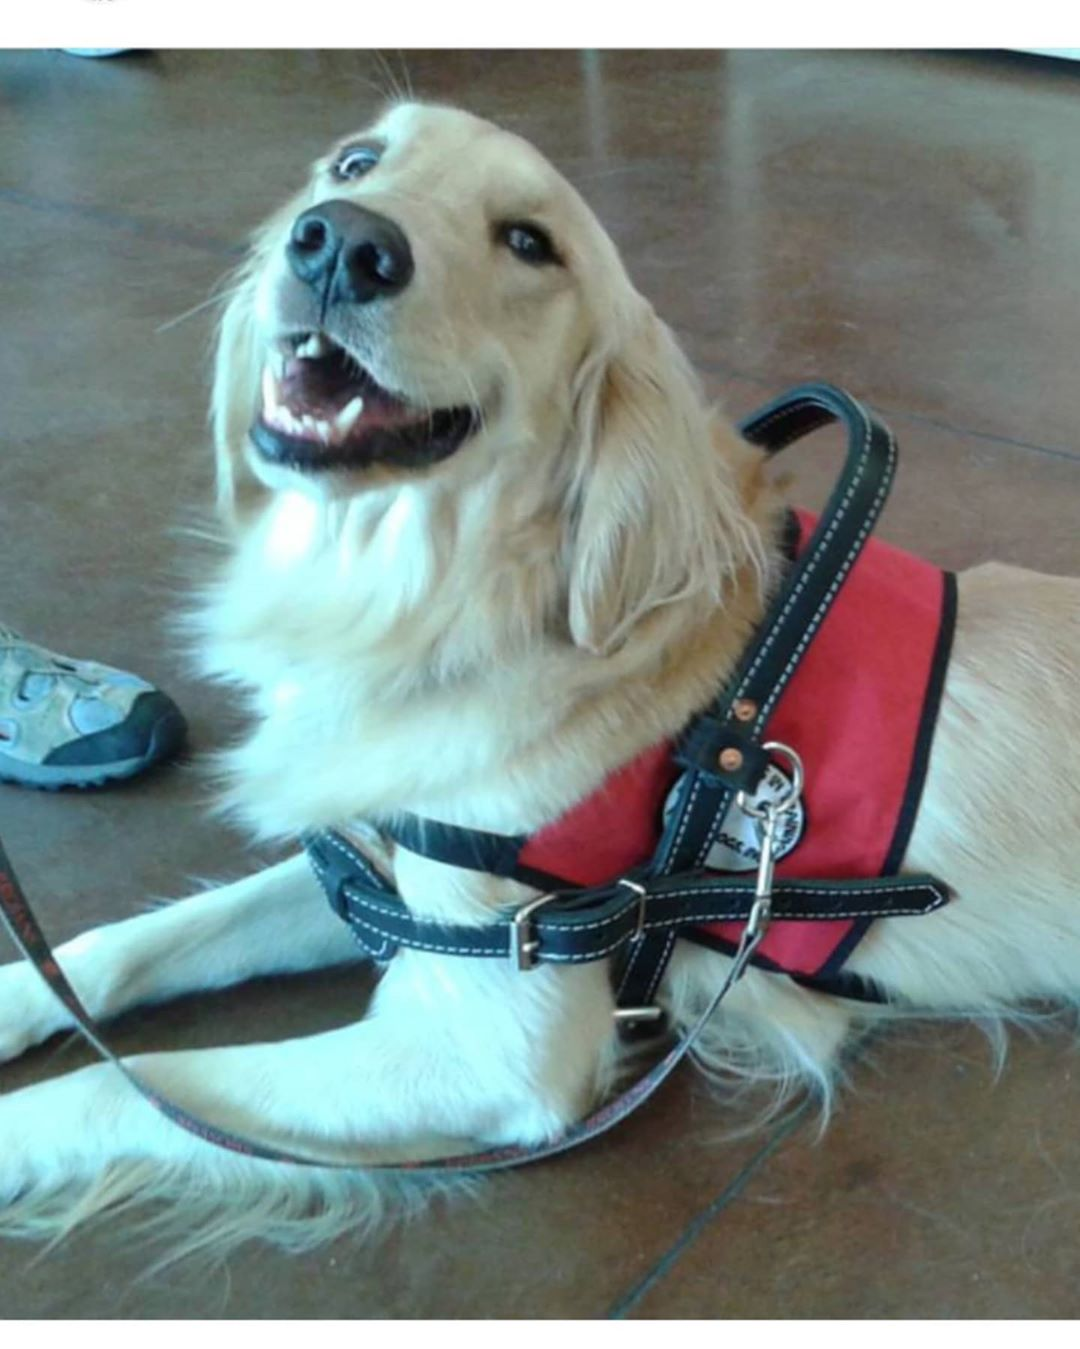 Another service dog in a vest.